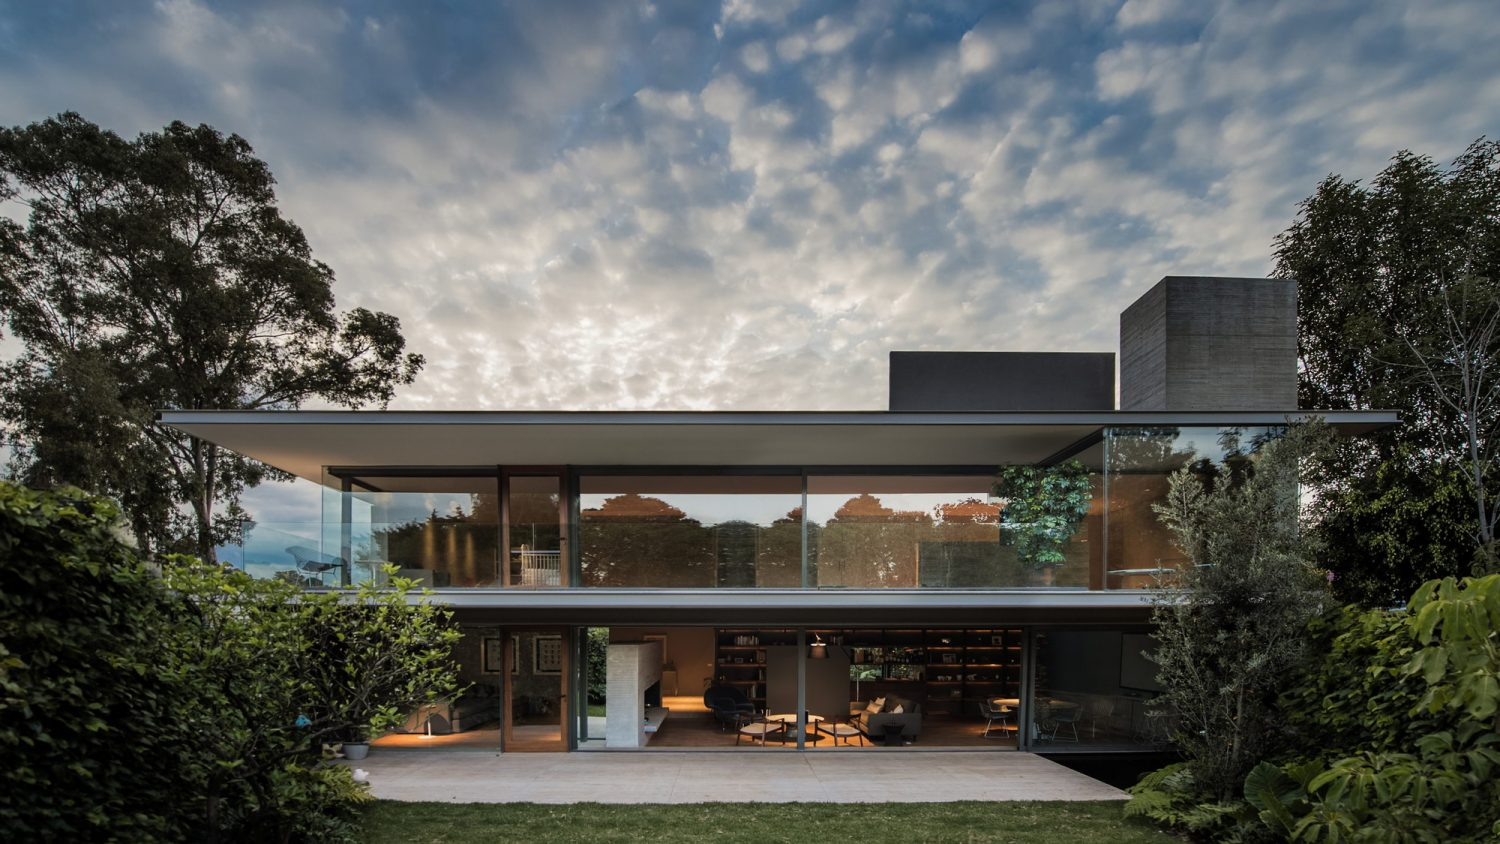 Ramos House by JJRR/ARQUITECTURA